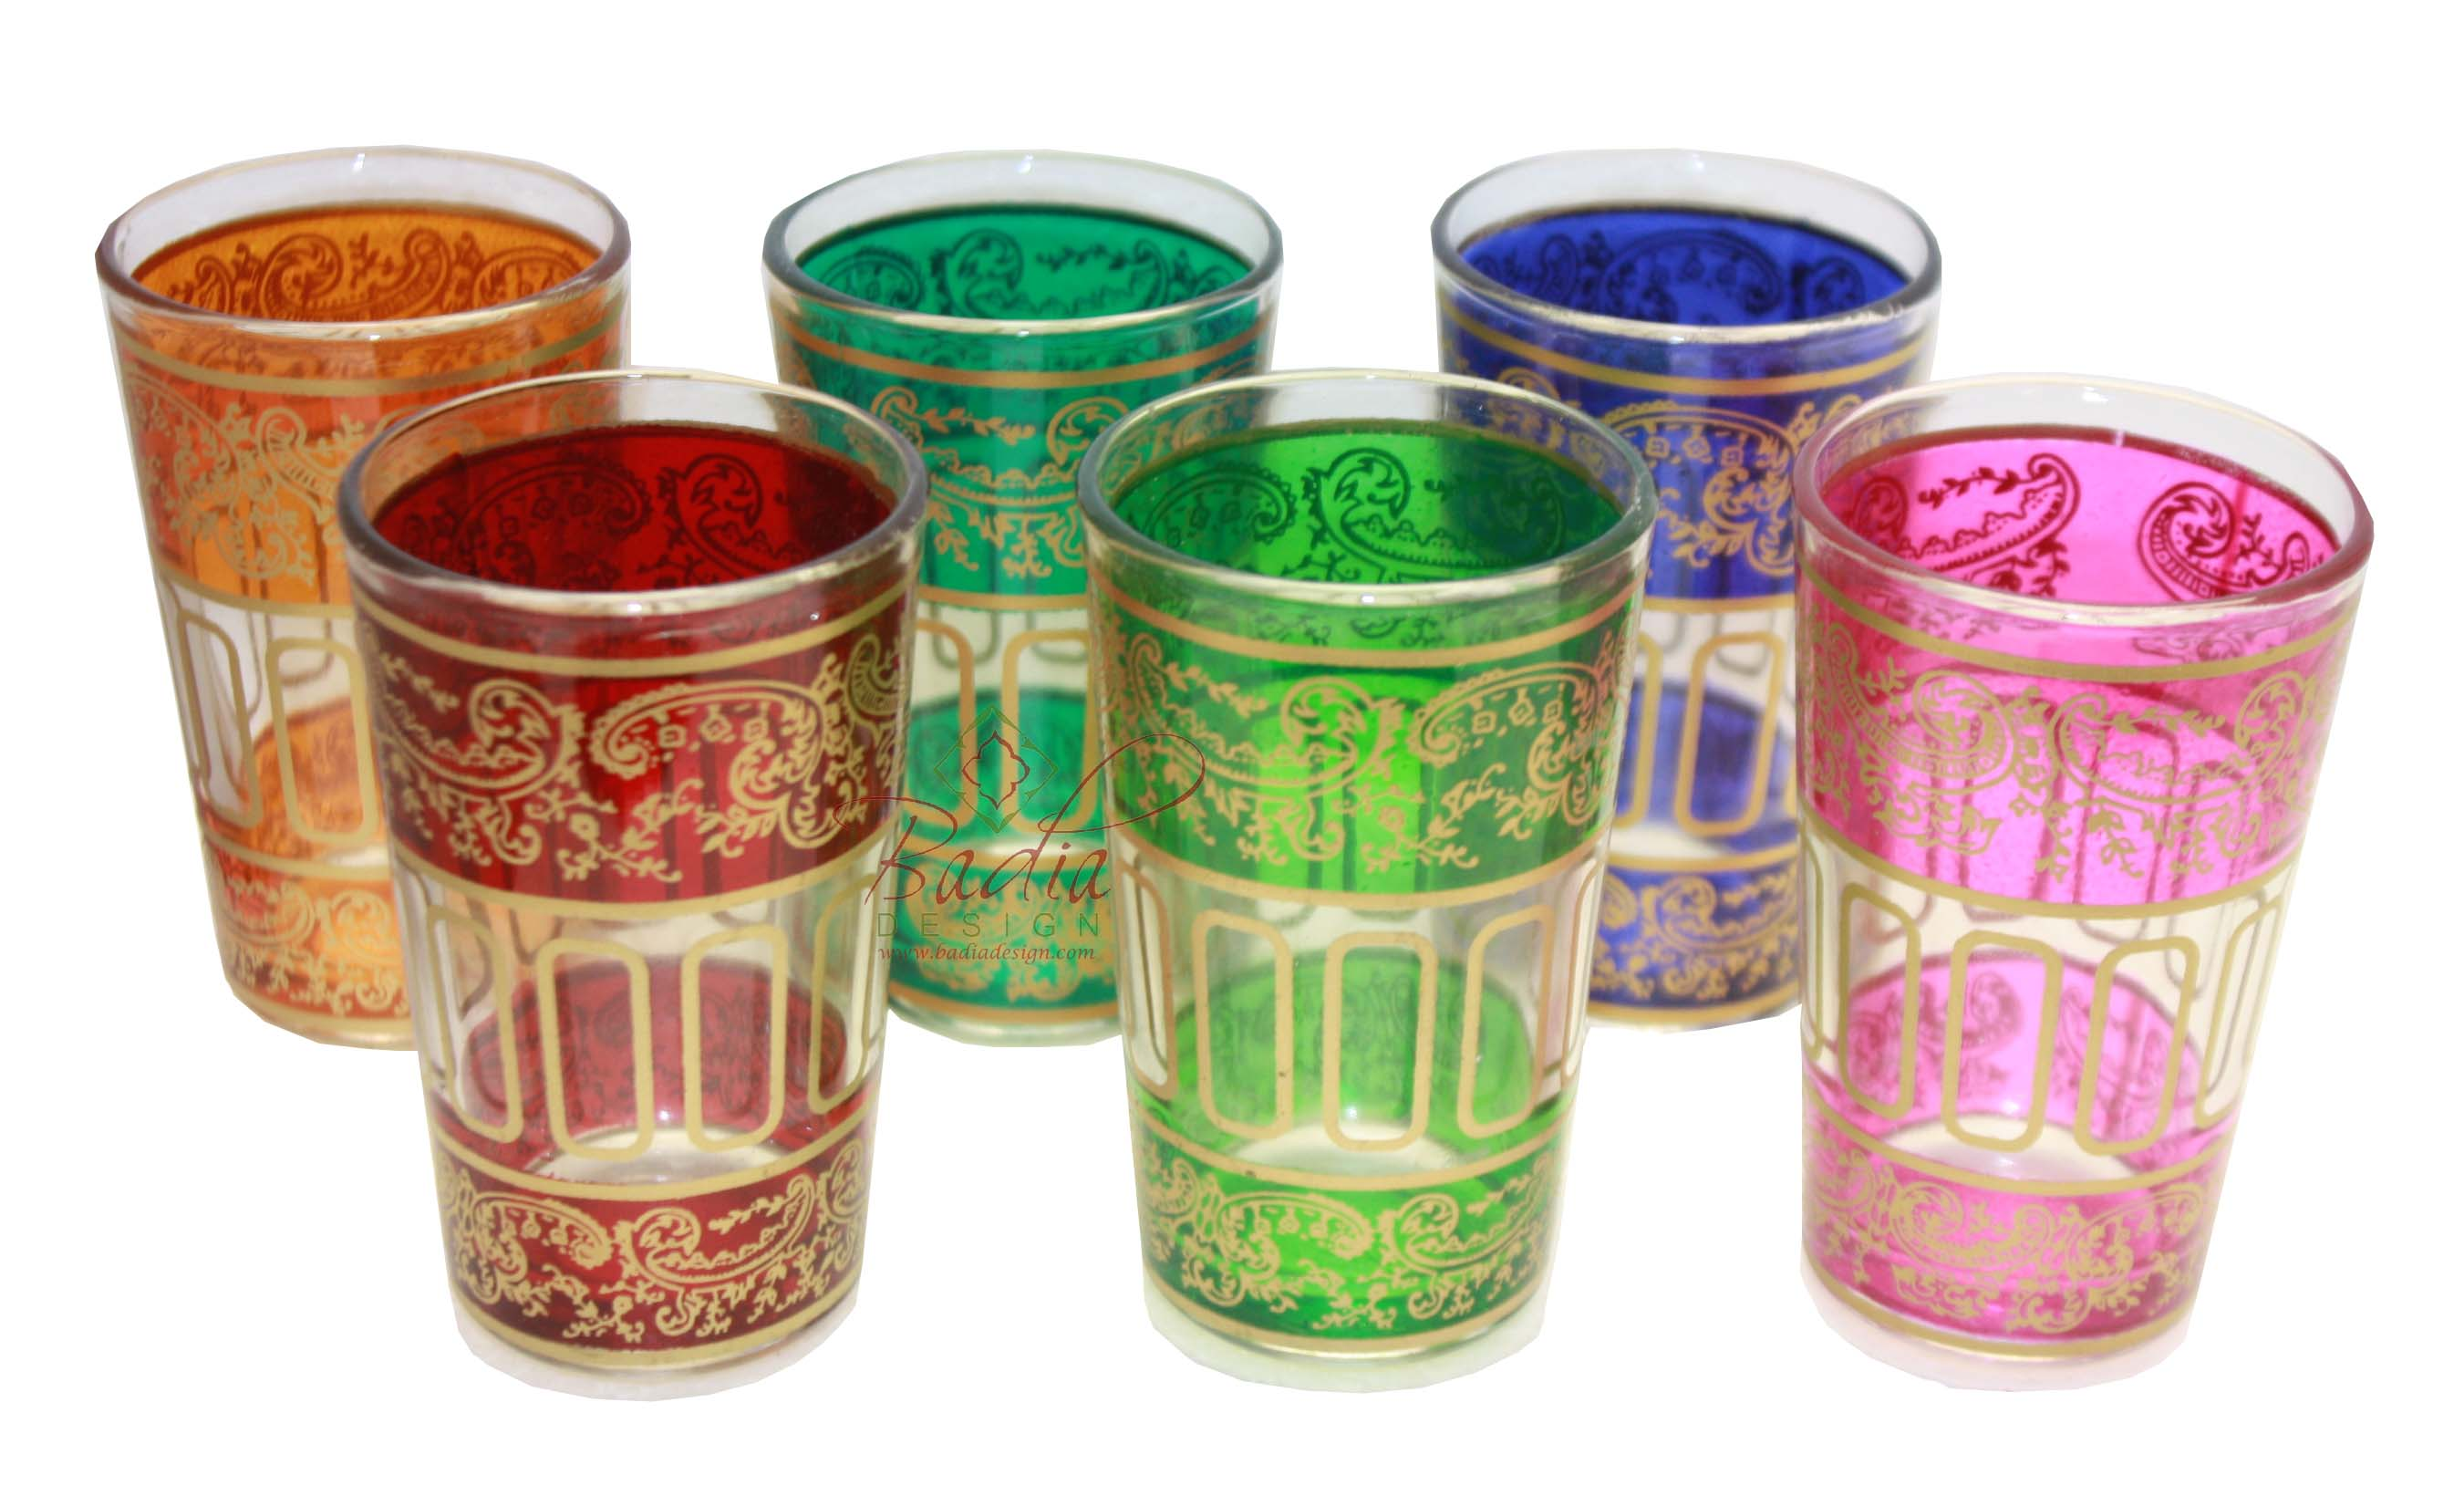 small-multi-color-tea-glasses-with-gold-motif-design-cgta10-112.jpg